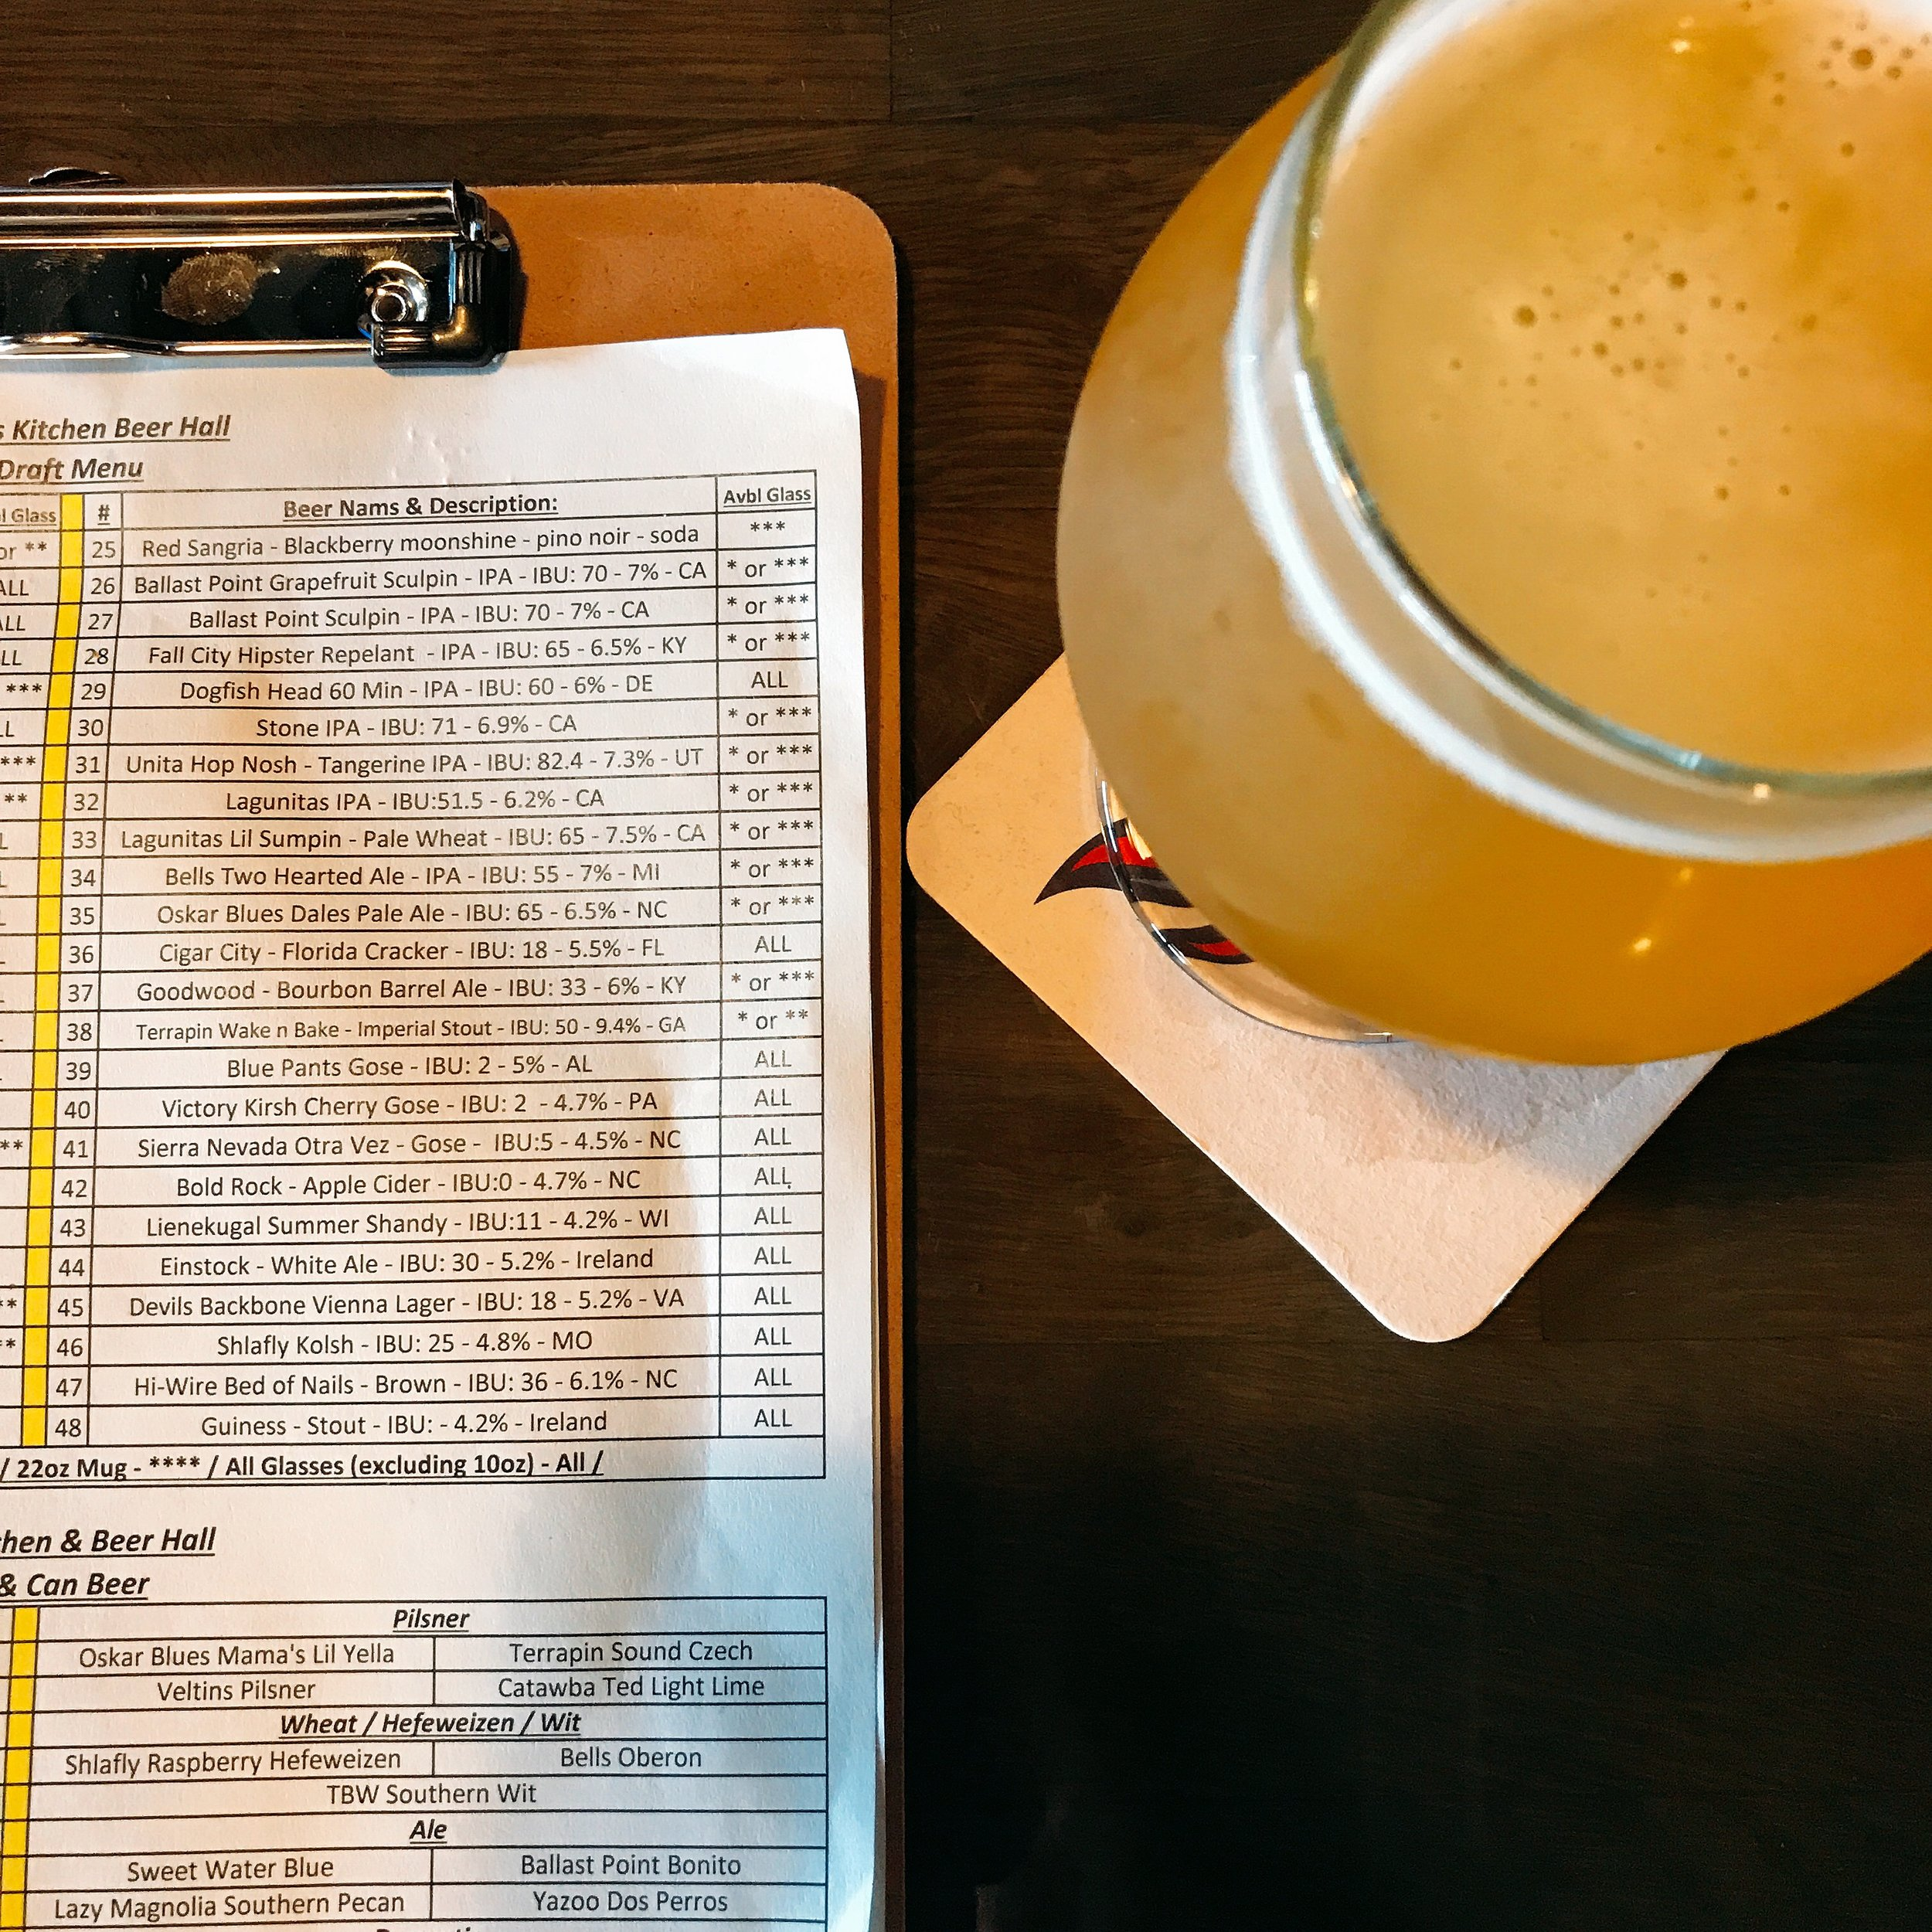 Check out this menu! SO. MANY. BEER. OPTIONS; Featured: Cigar City Florida Cracker